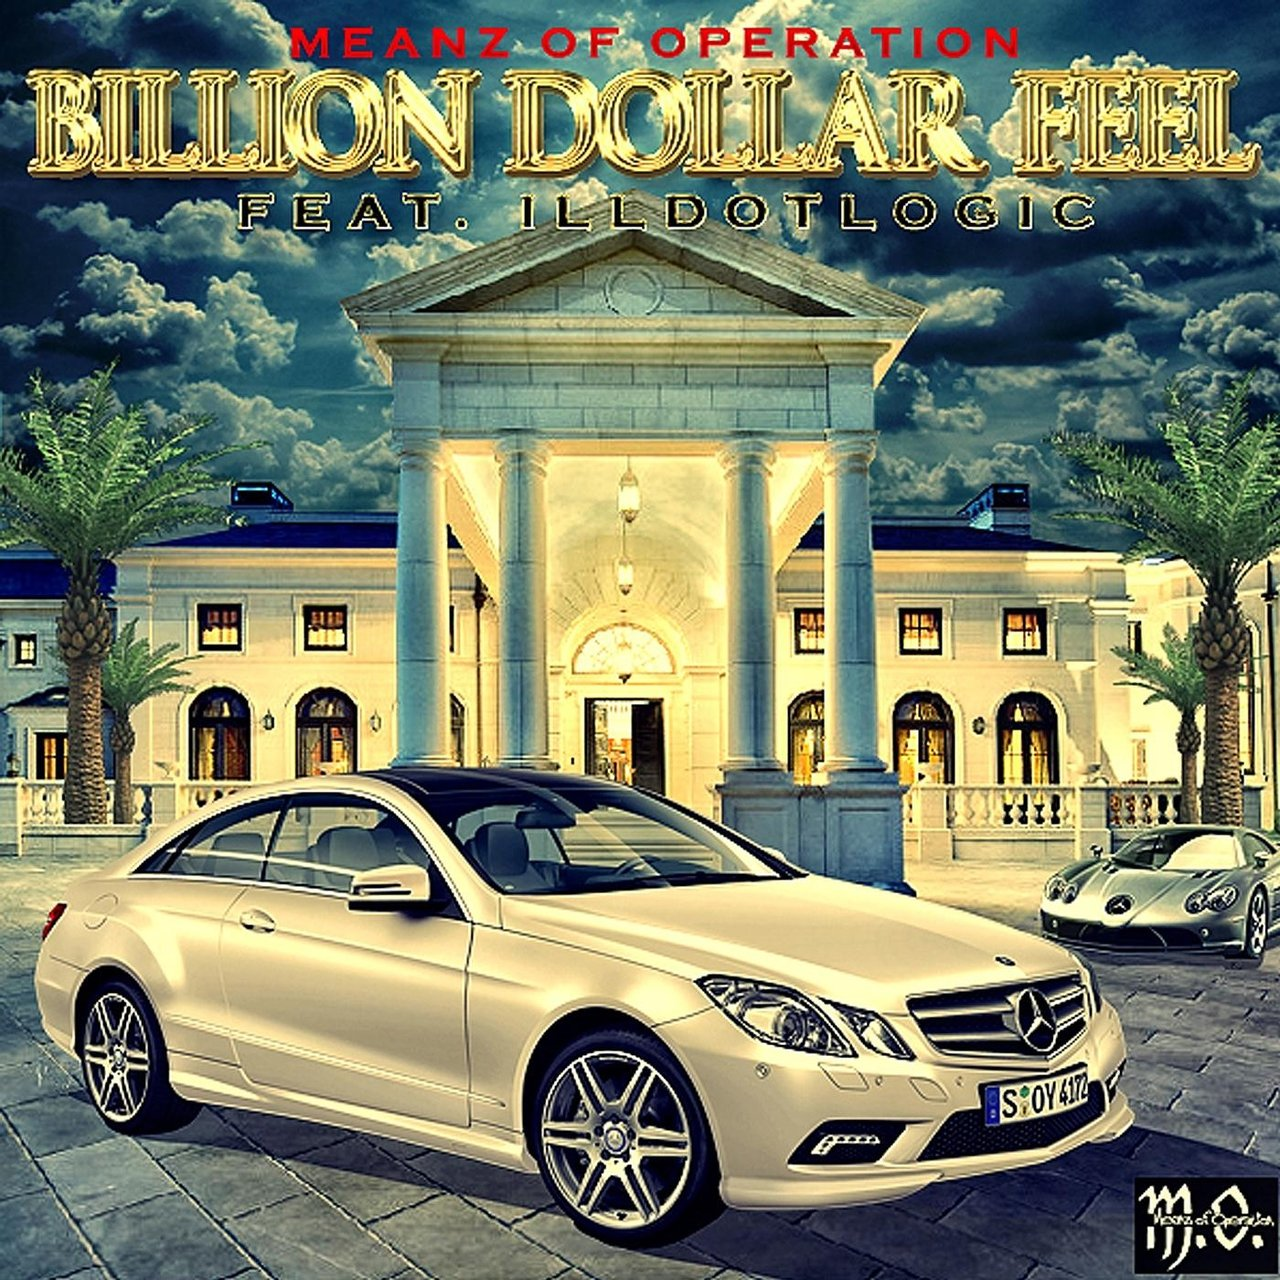 Billion Dollar Feel (feat. Illdotlogic)